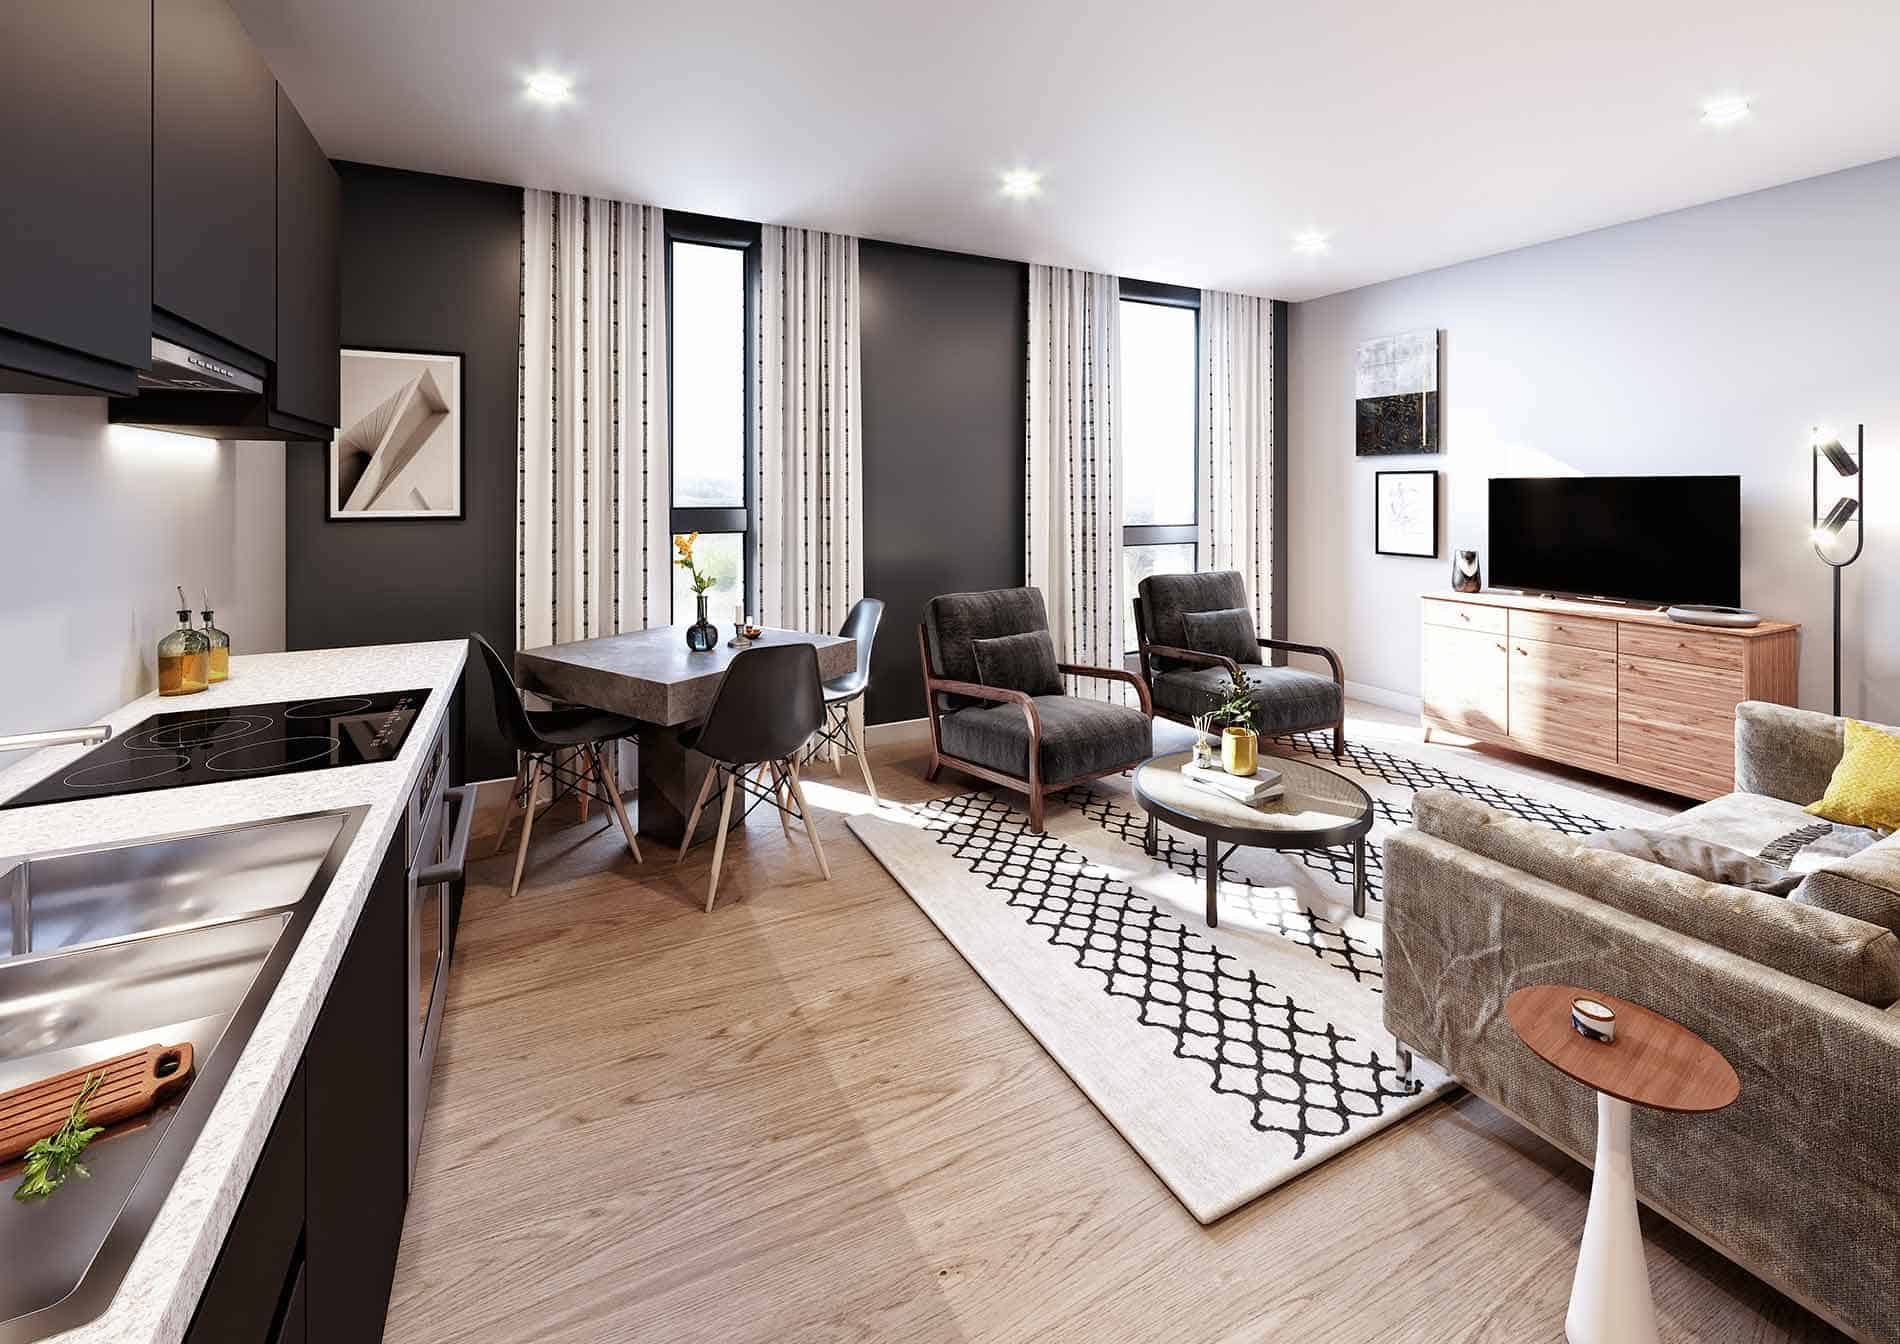 Coates House Bristol UK Interior: Commercial to Residential Property Conversion Apartment